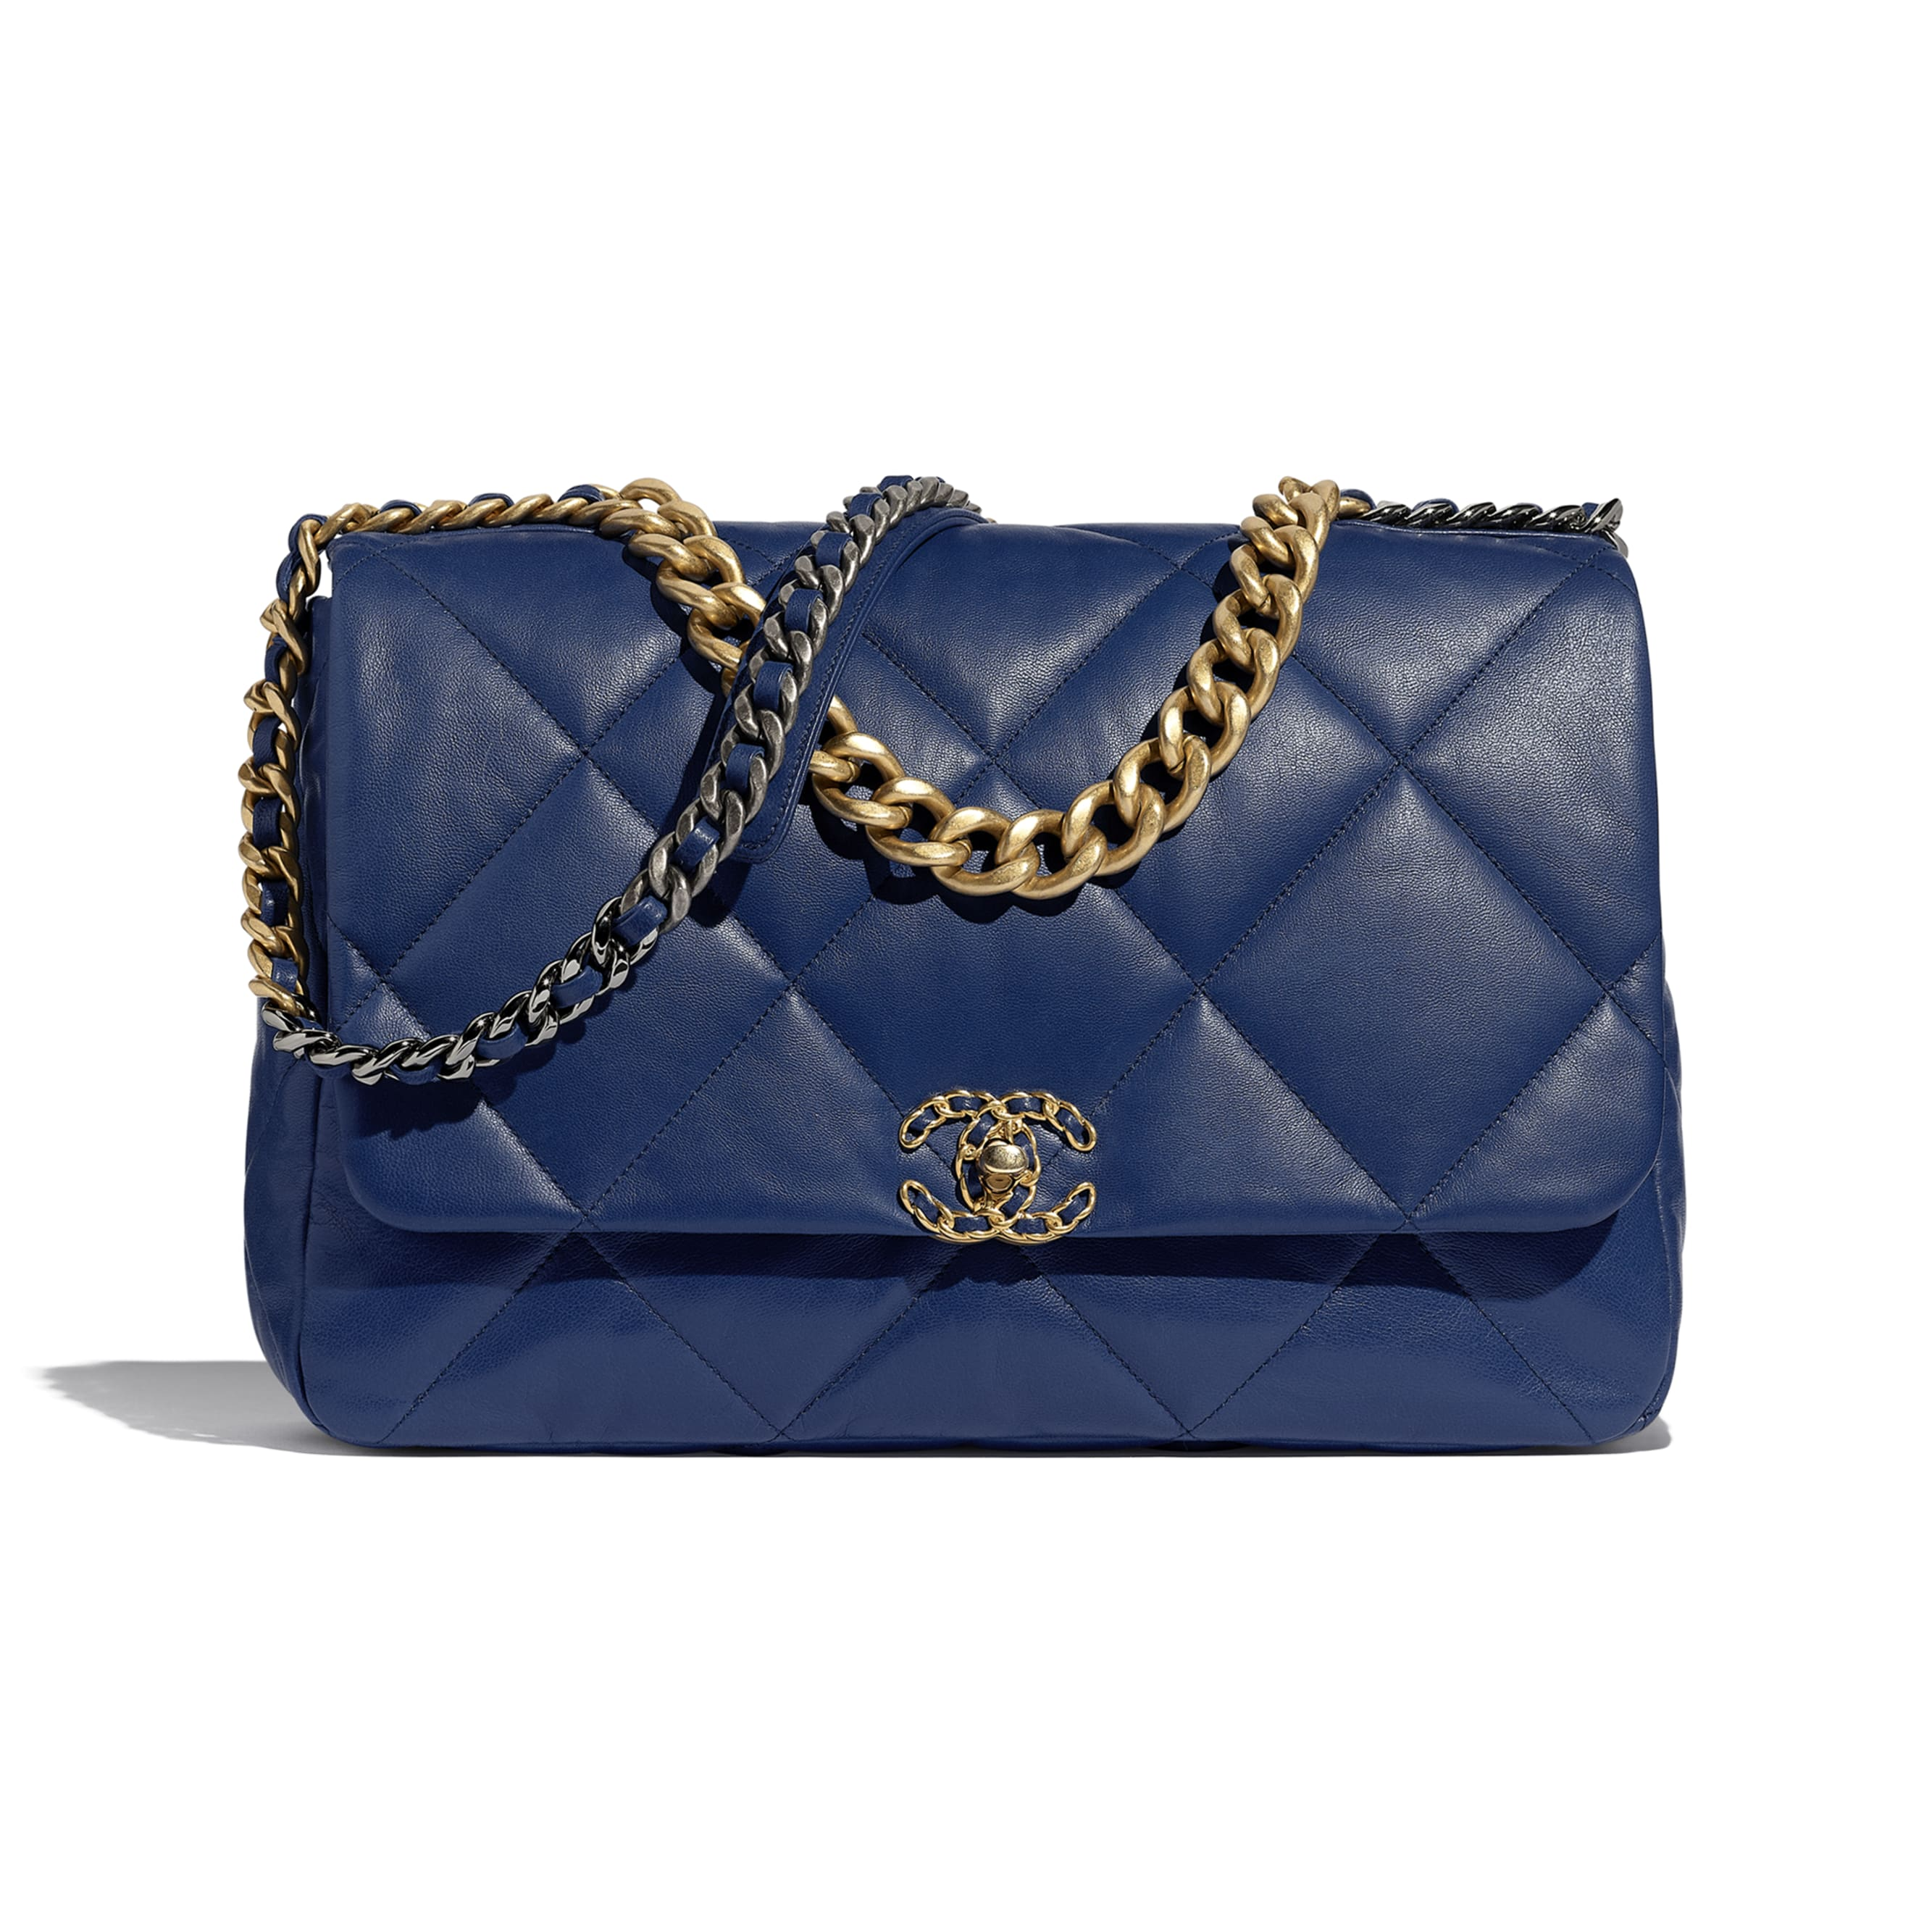 CHANEL 19 Maxi Flap Bag - Dark Blue - Goatskin, Gold-Tone, Silver-Tone & Ruthenium-Finish Metal - CHANEL - Default view - see standard sized version